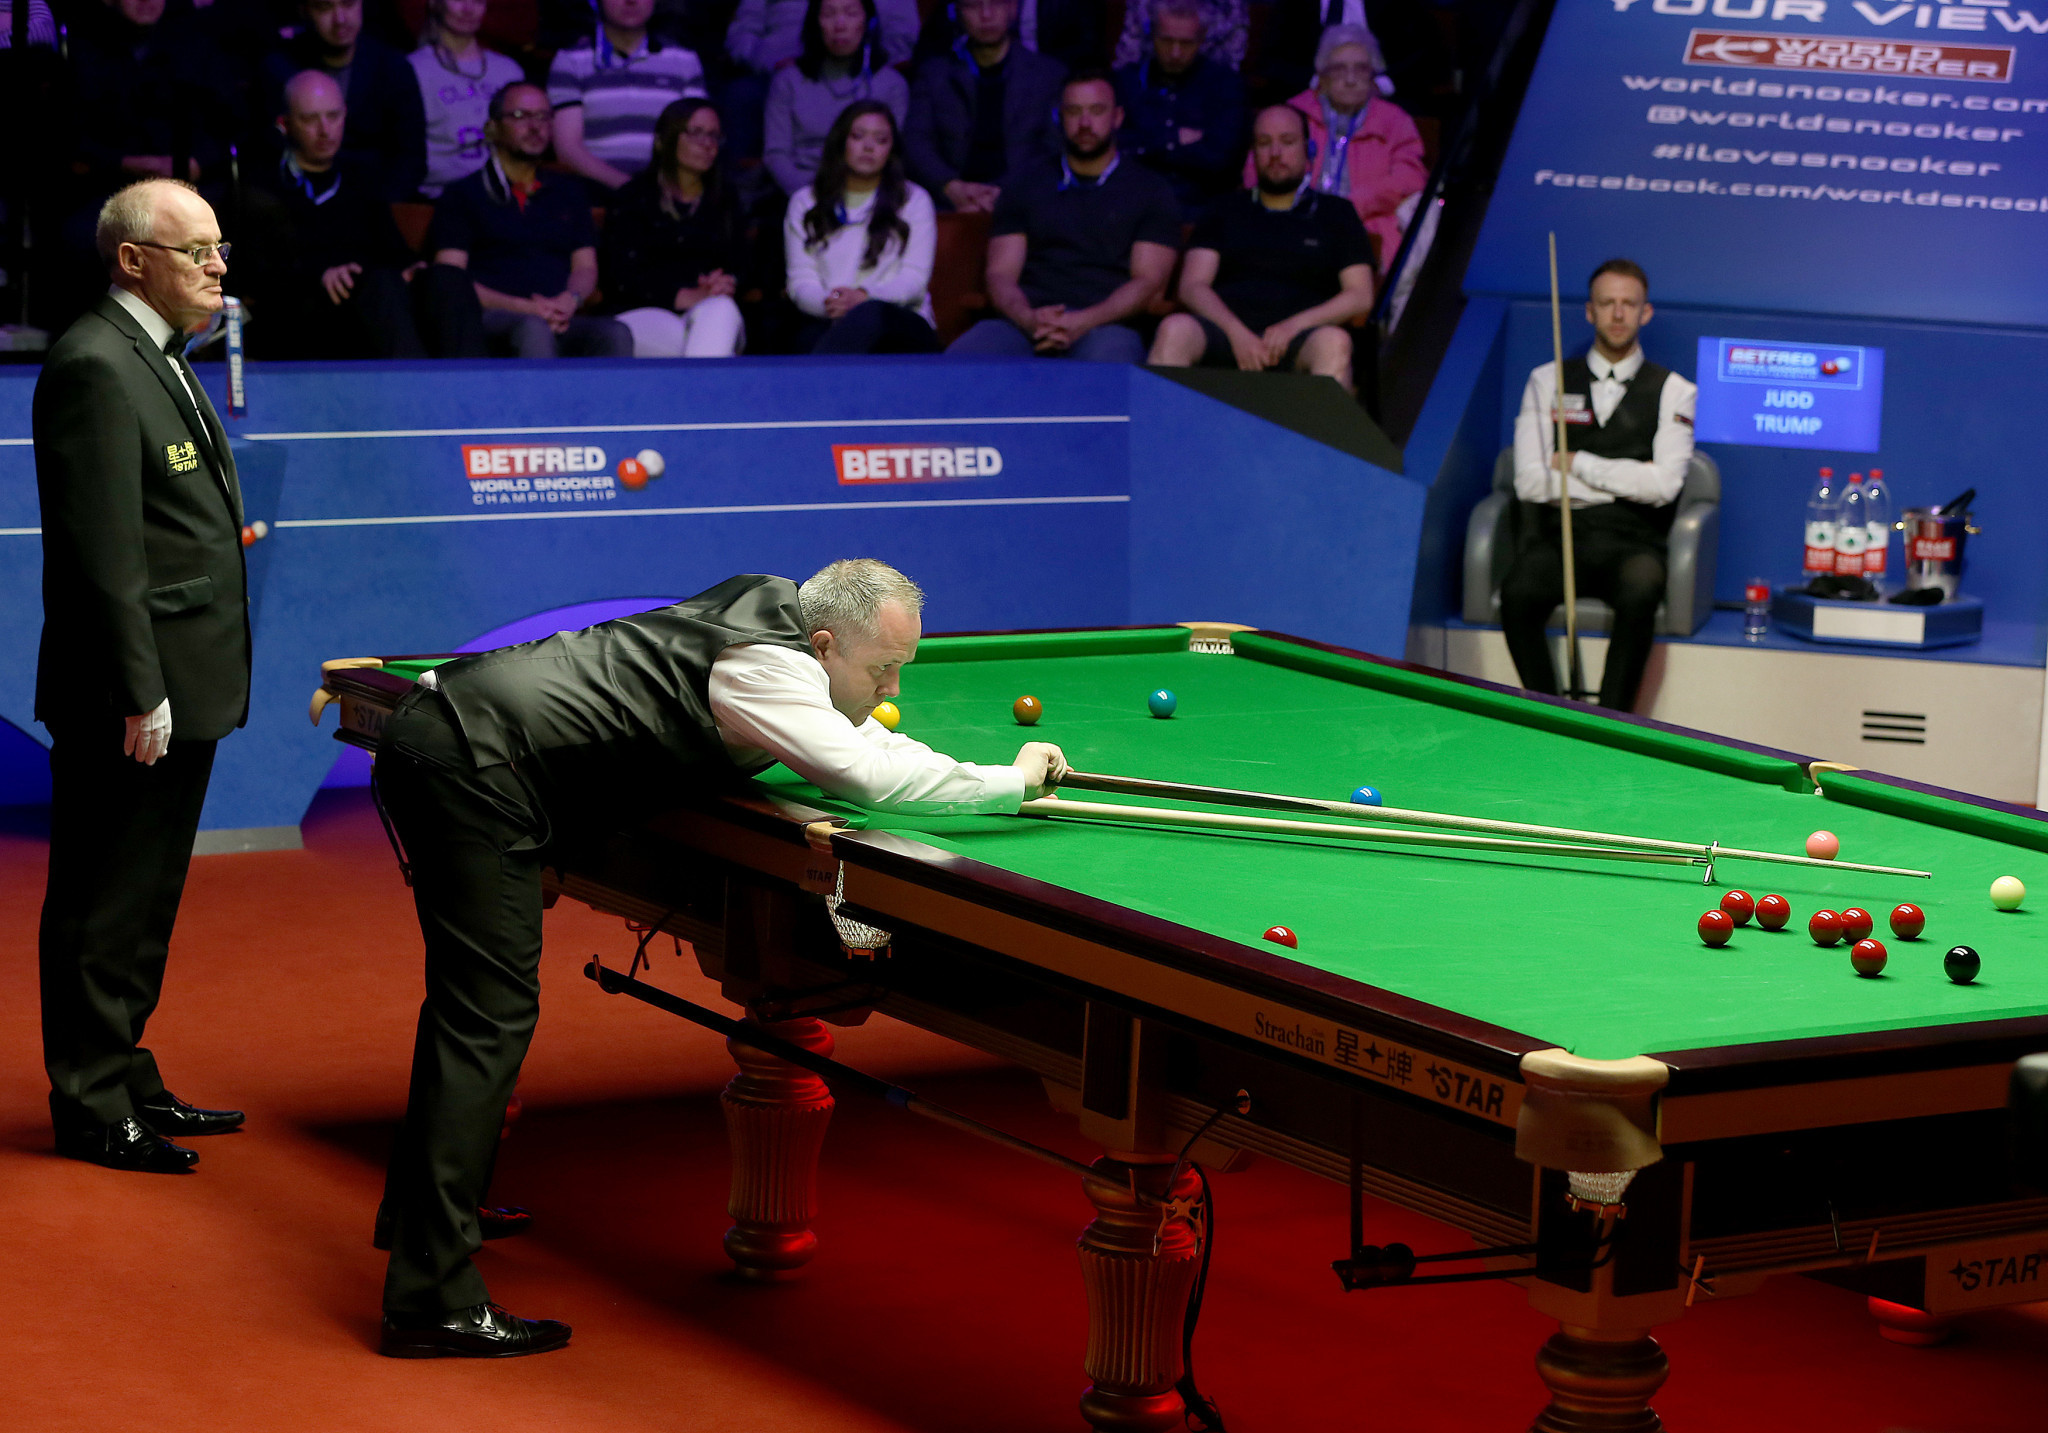 The World Snooker Championship has been rescheduled to July 31 to August 16 due to the coronavirus pandemic ©Getty Images